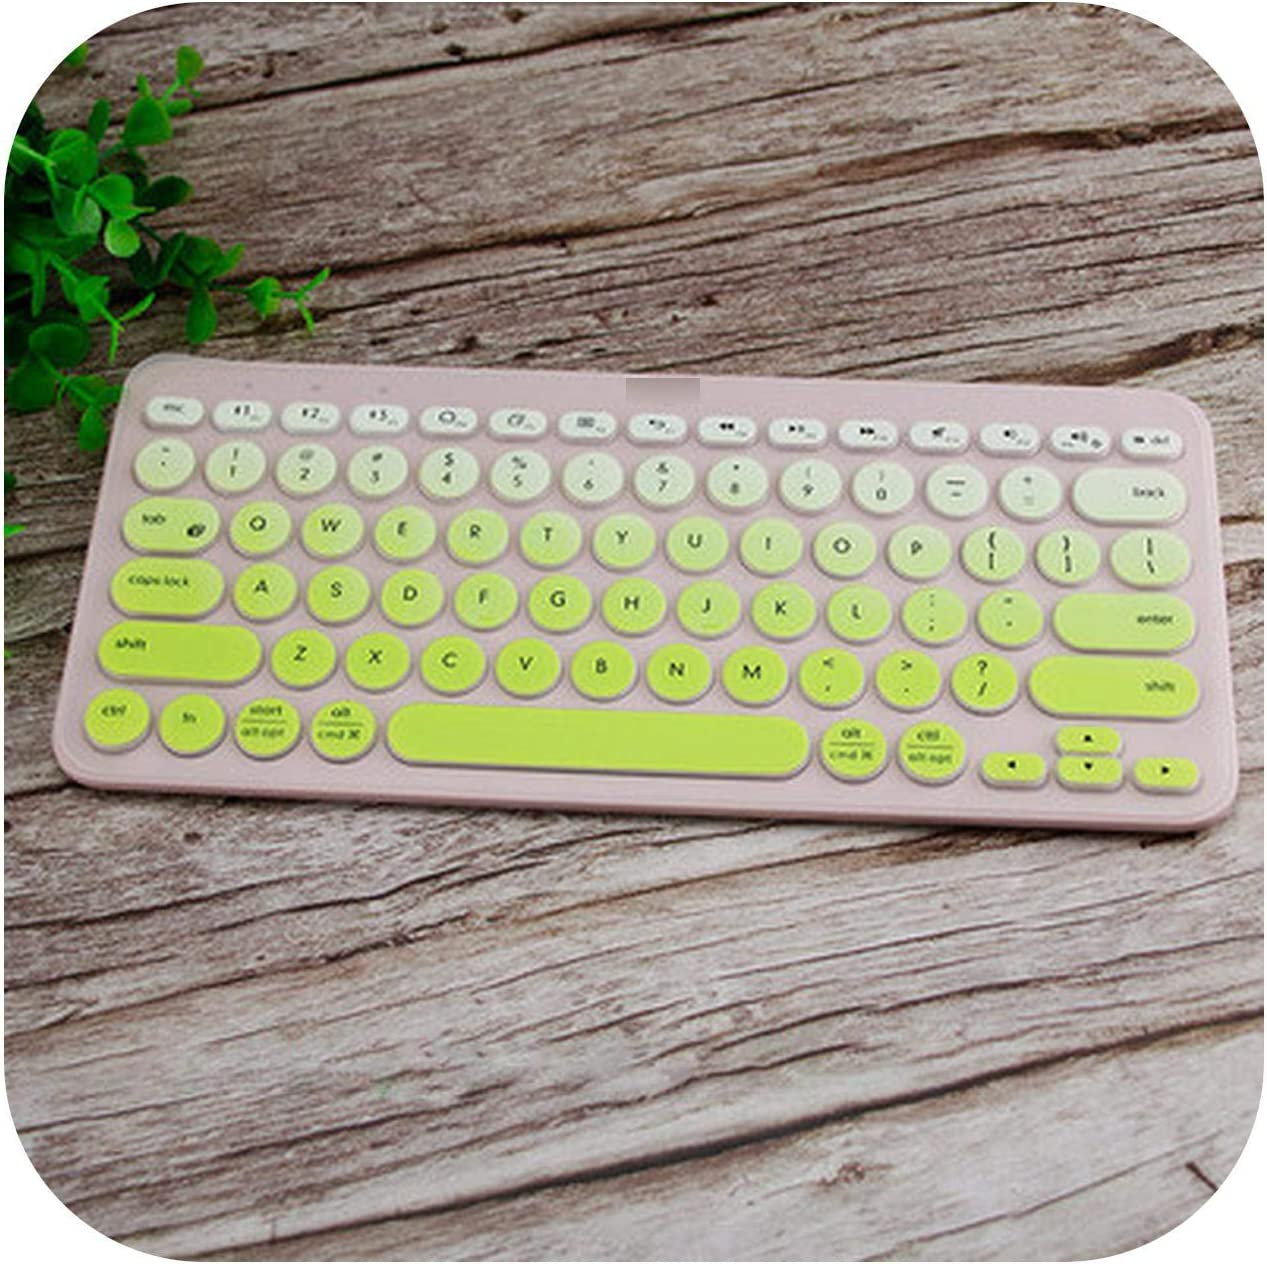 Soft Silicone Keyboard Cover Protective Film for Logitech K380 K 380 Bluetooth Keyboard Multi Device Mechanical Skin Protector-Gradual Green